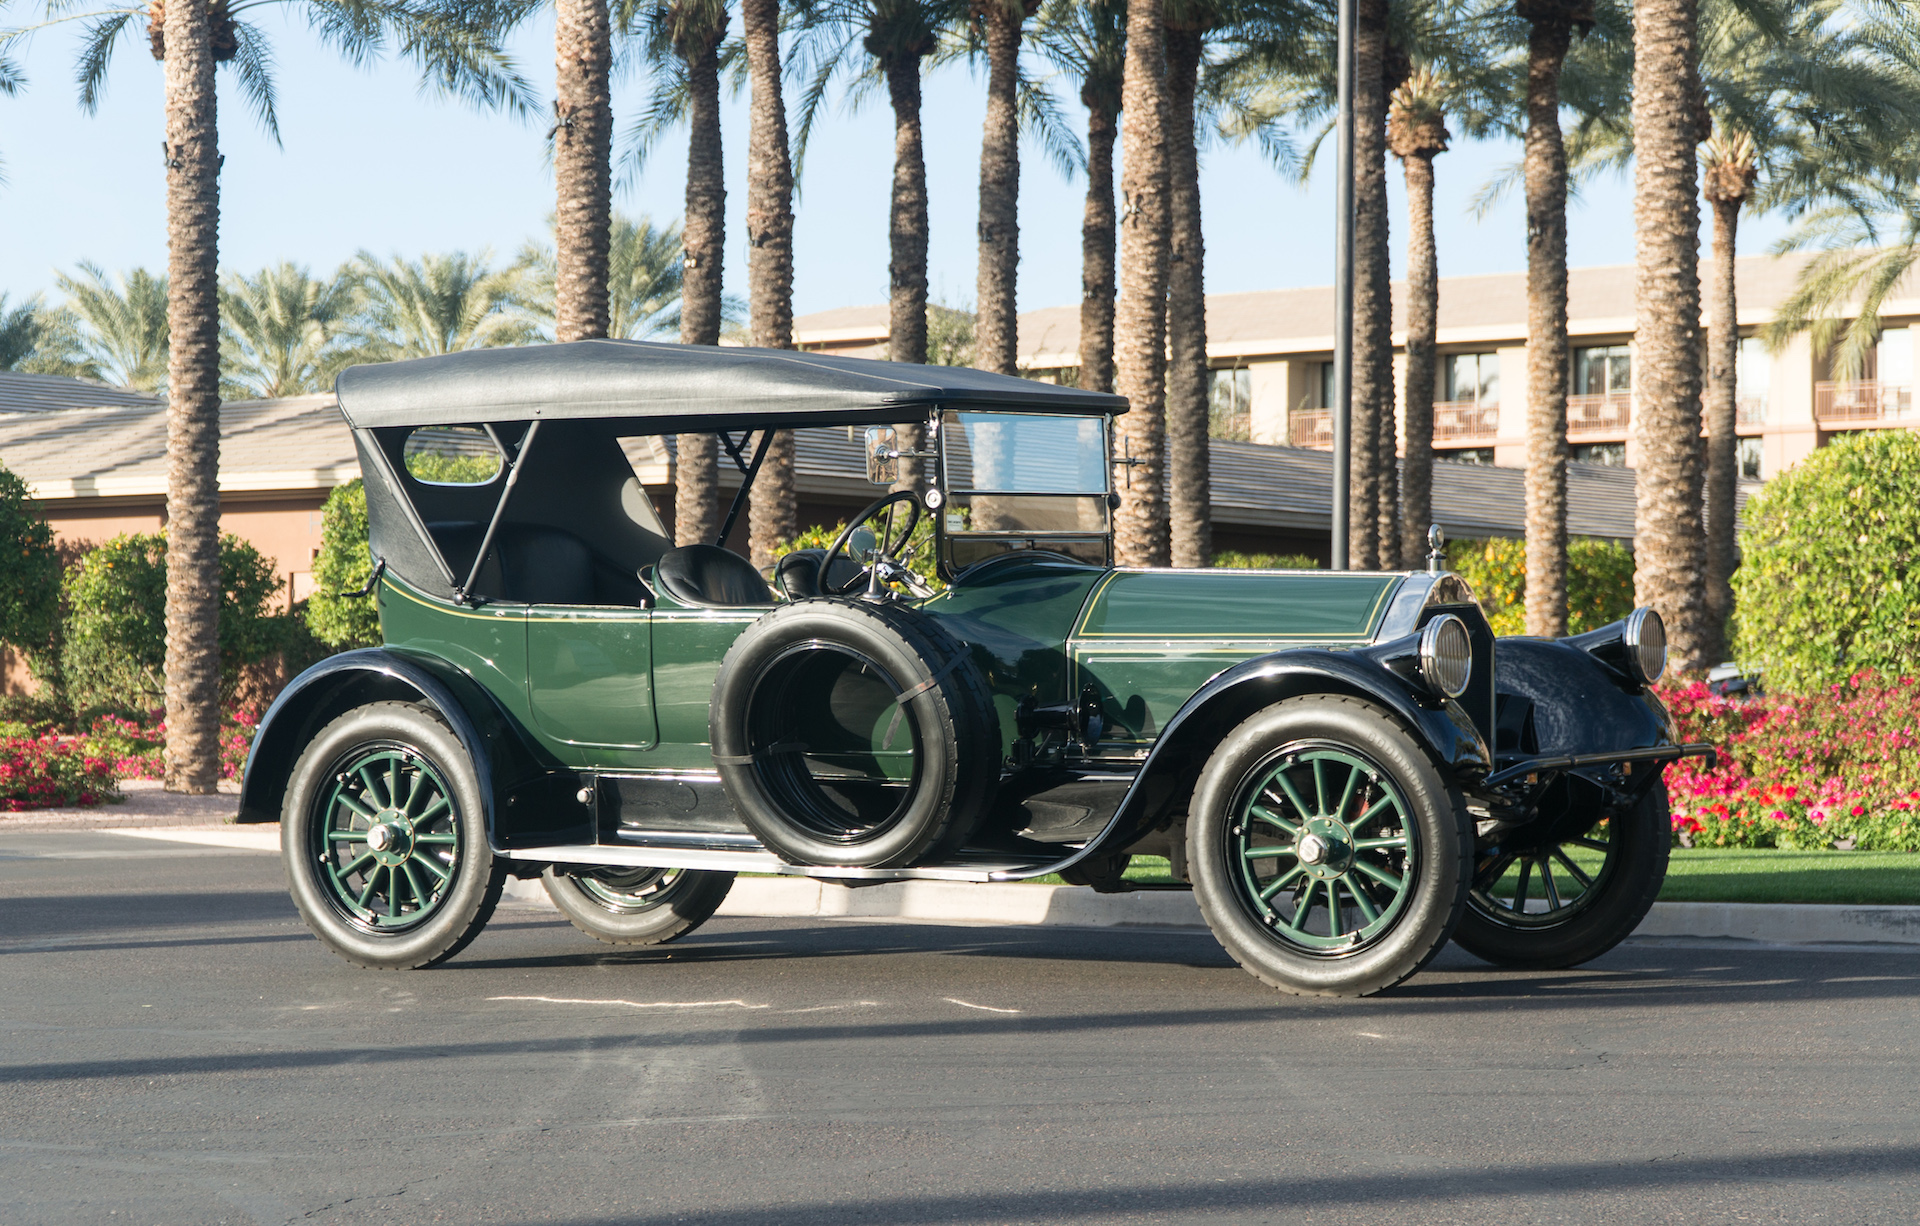 Results of Bonhams 2018 Amelia Island Auction - The Classic Car Trust